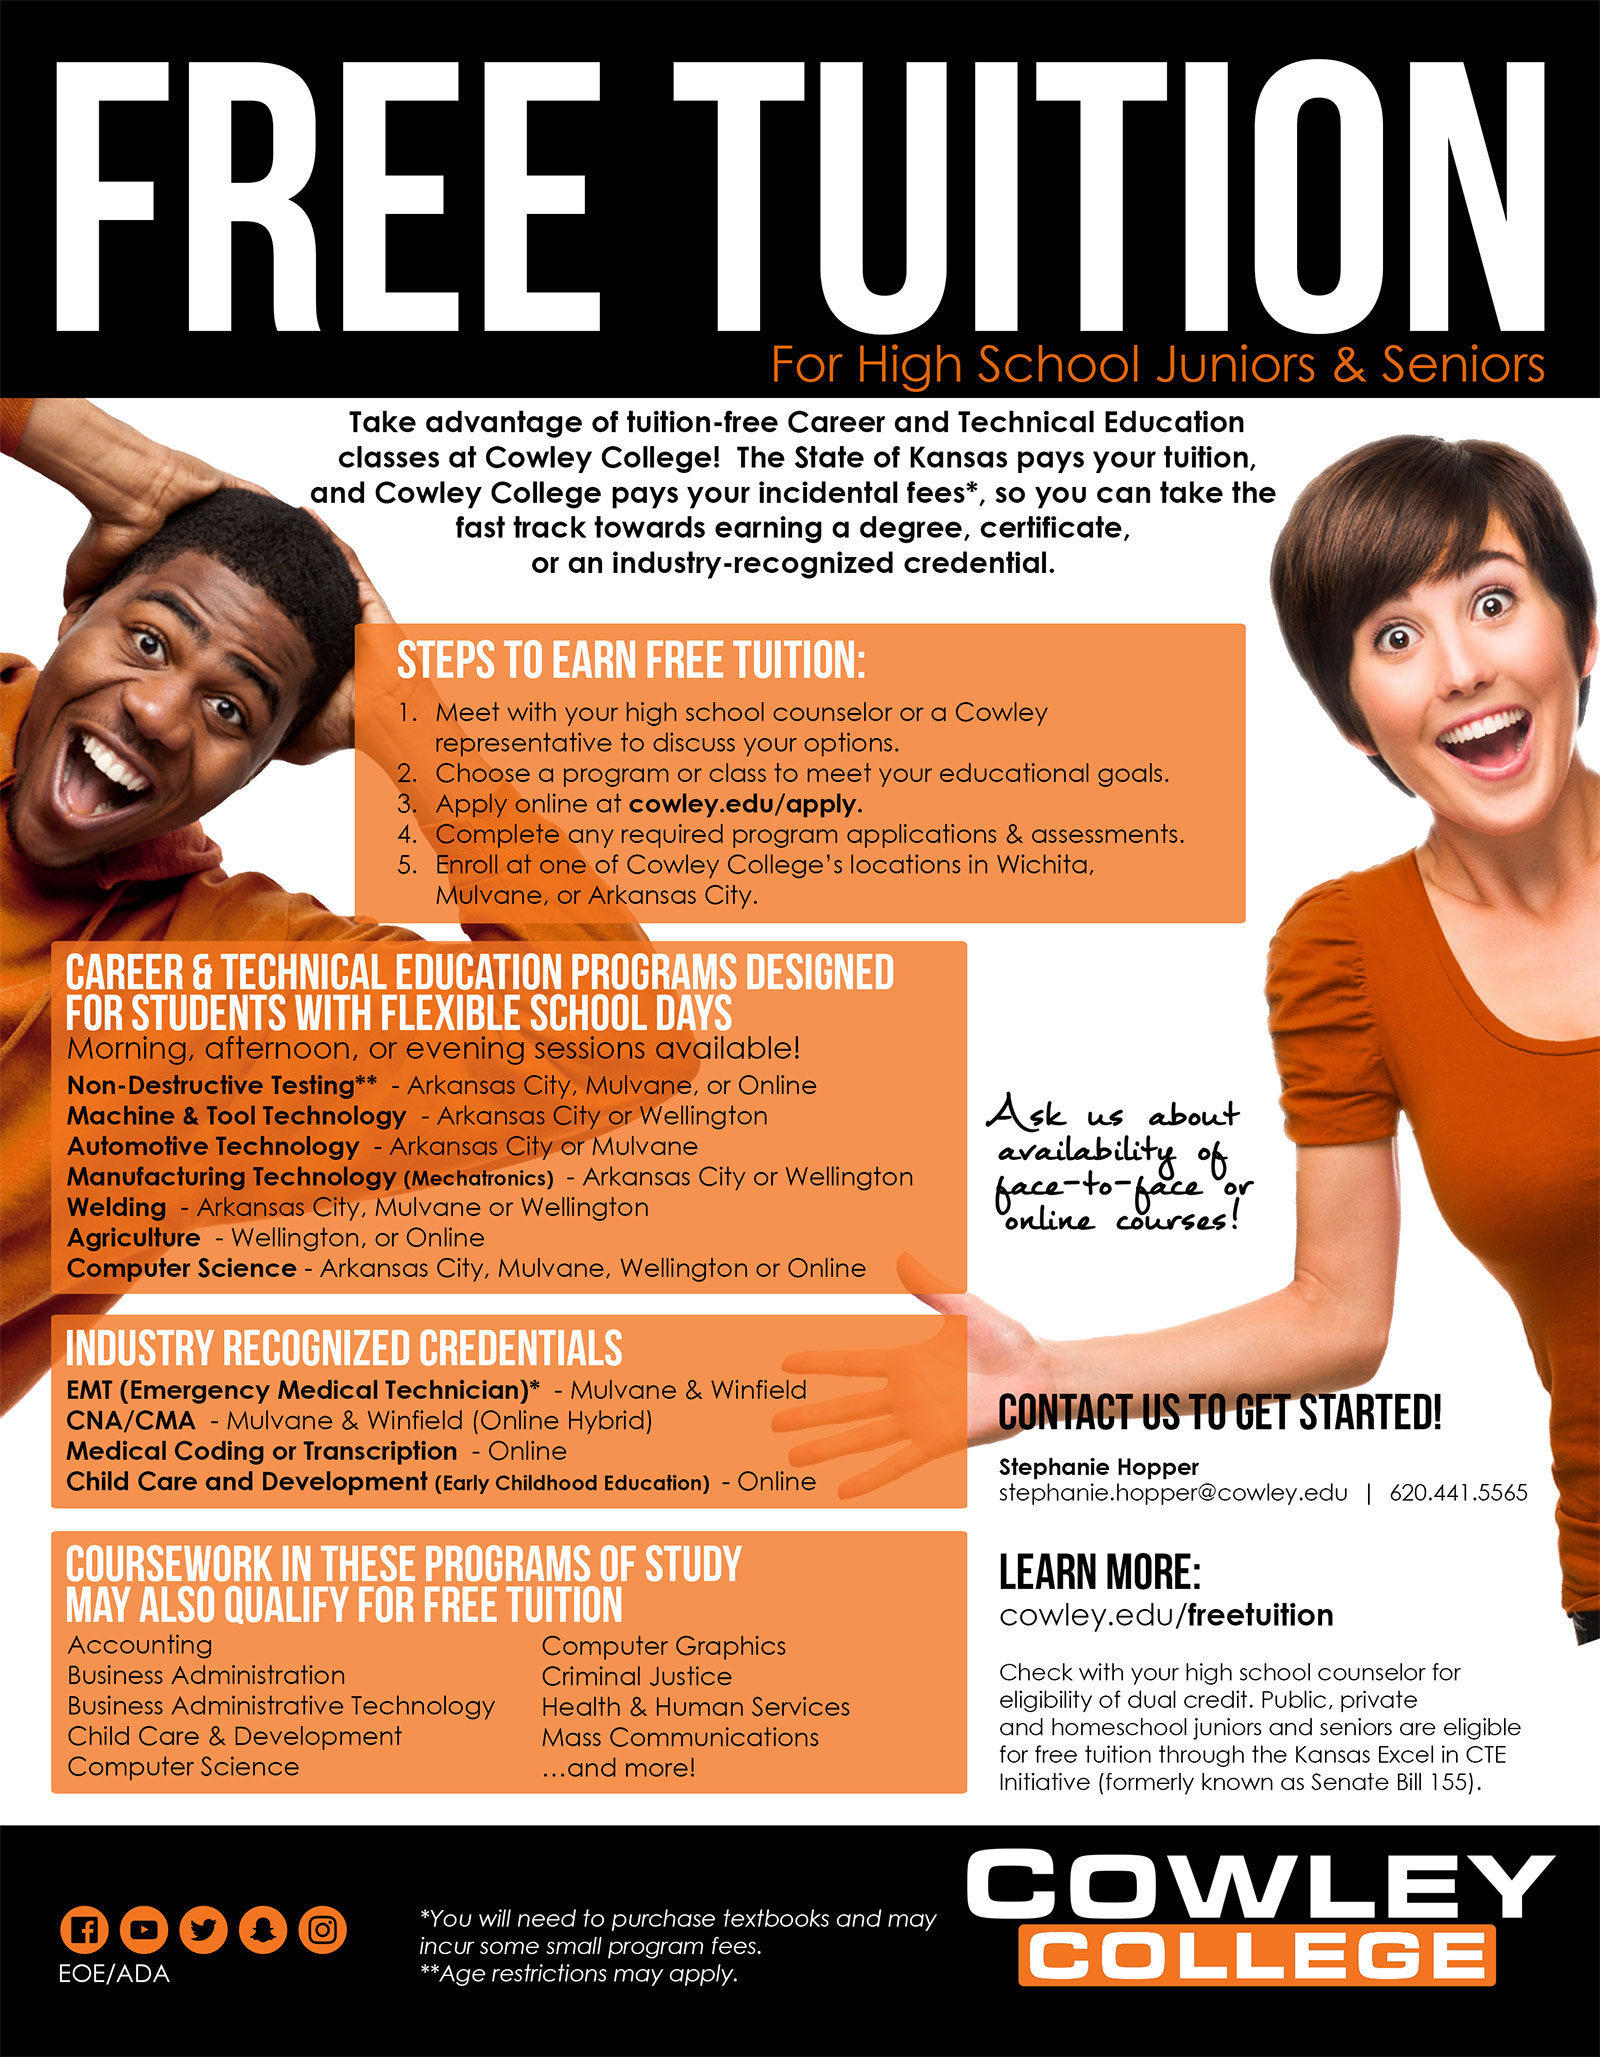 Free Tuition at Cowley College